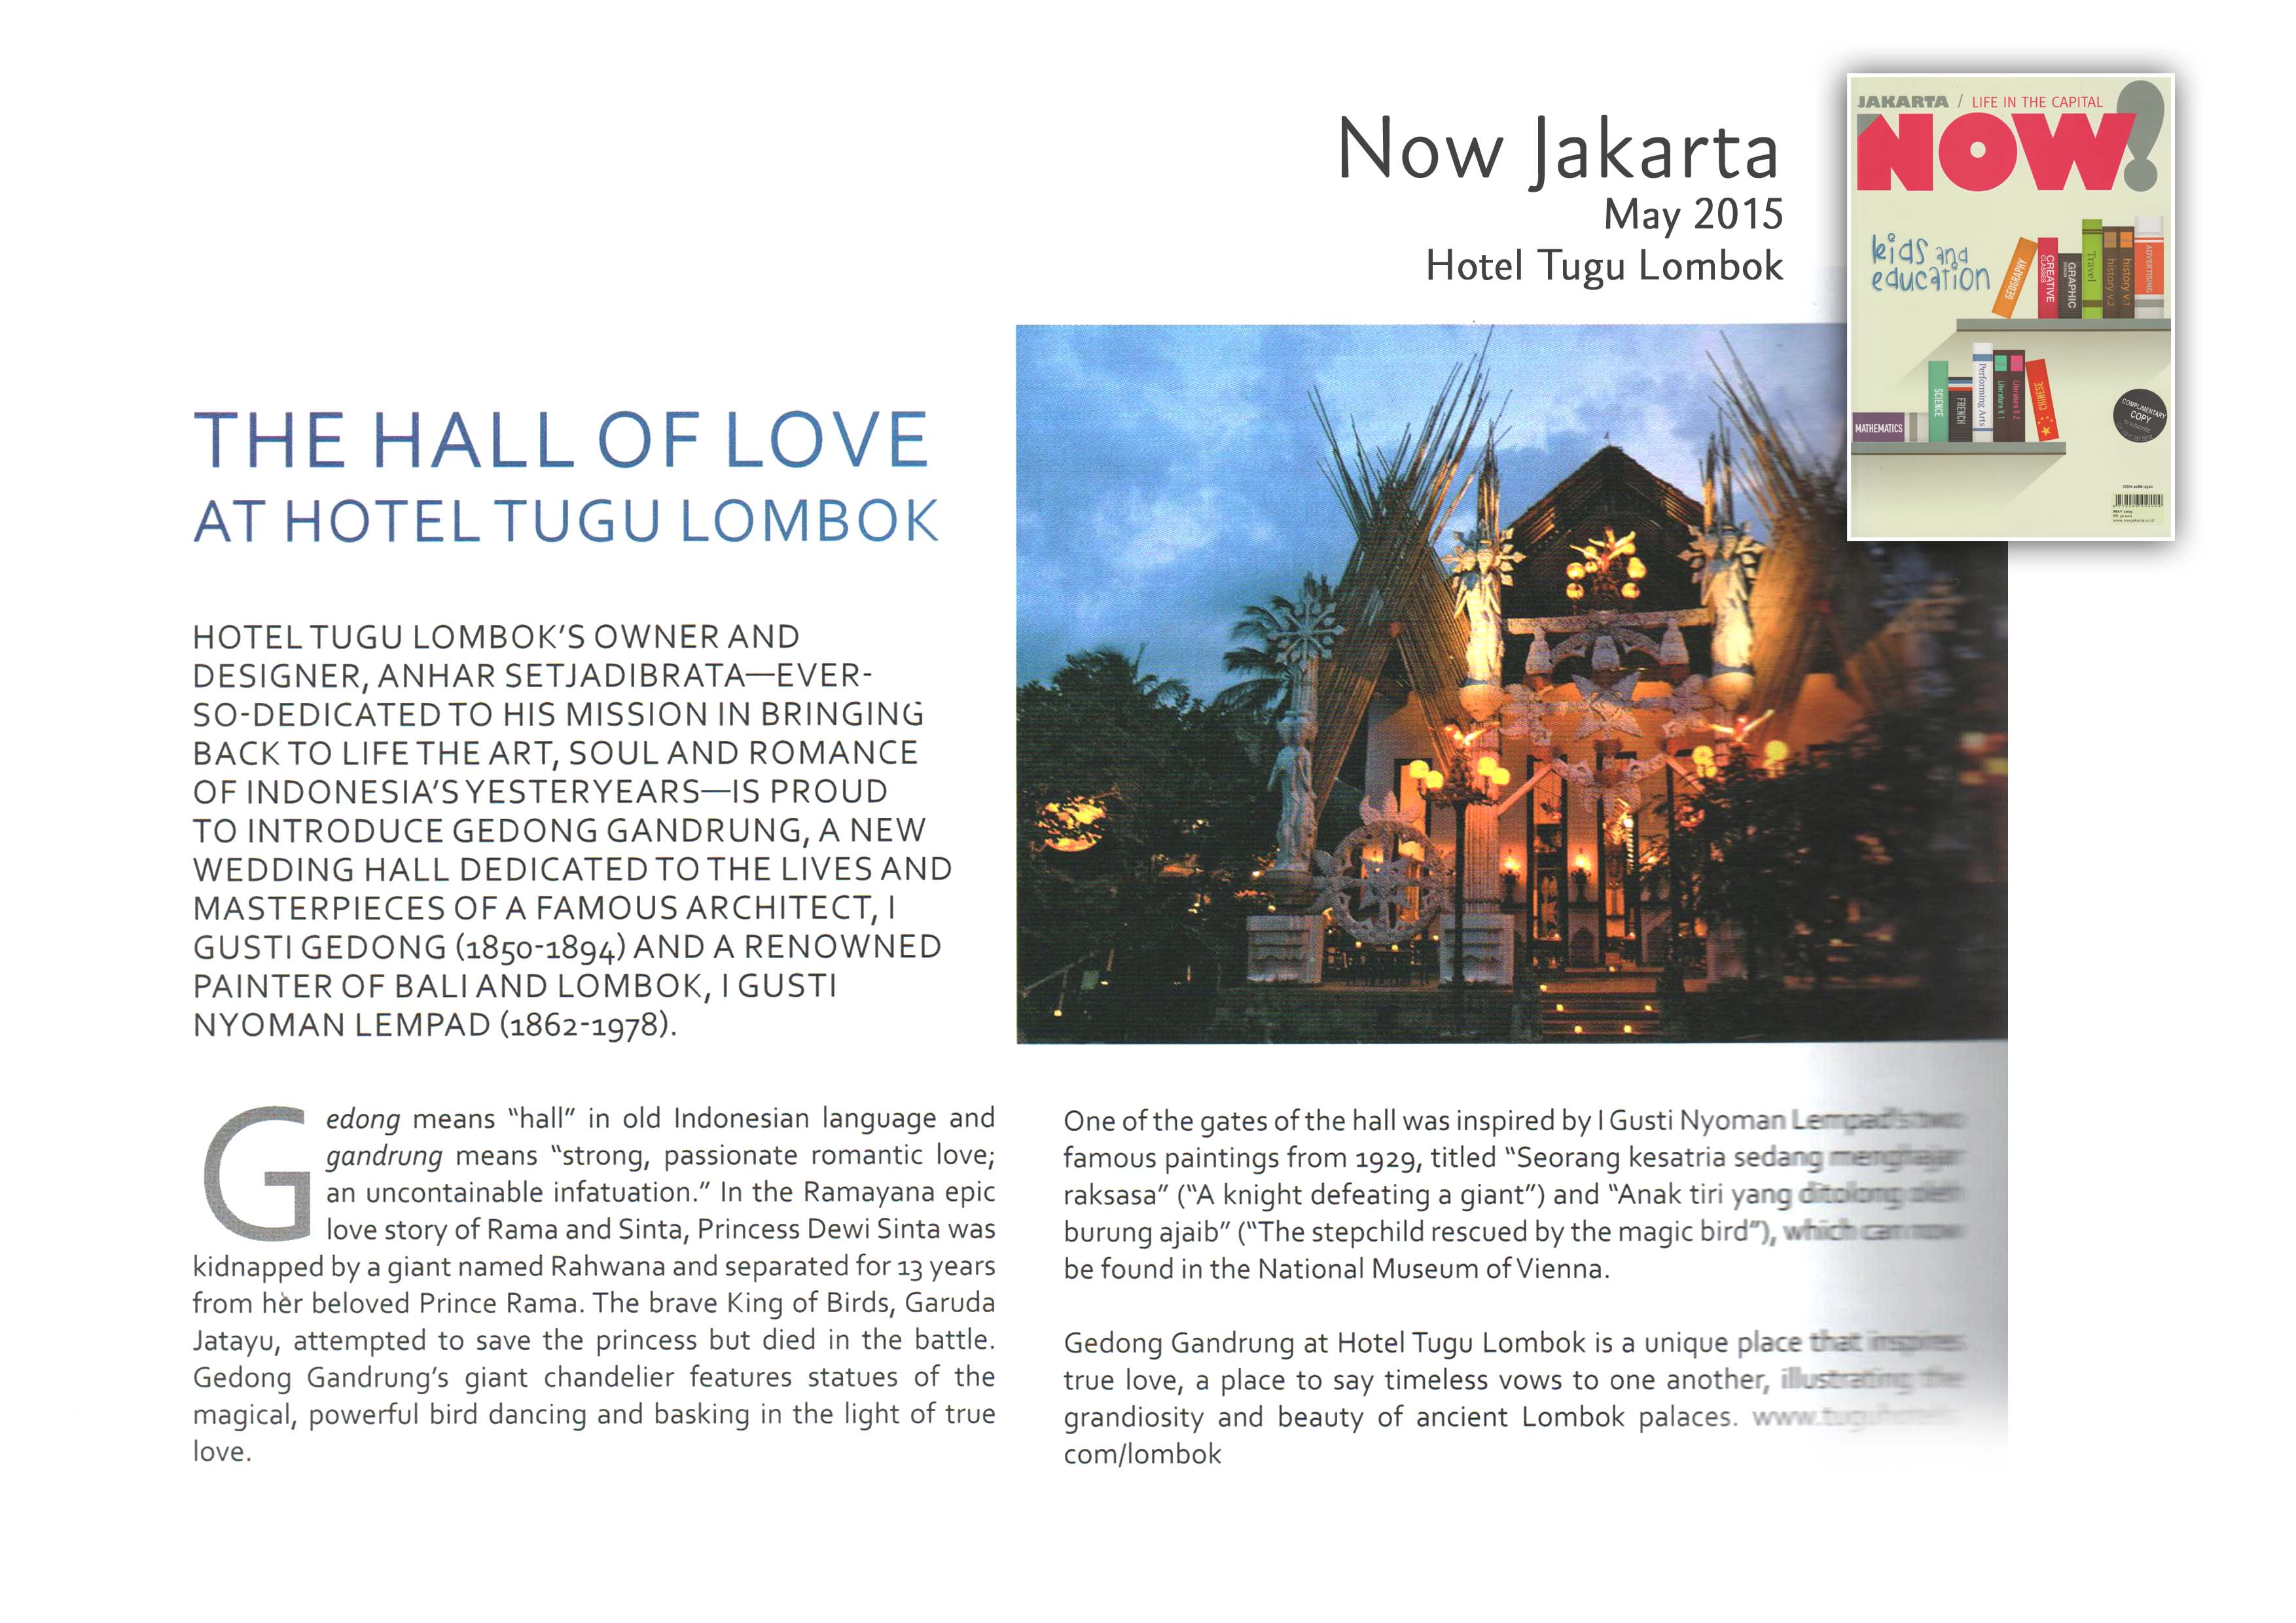 The Hall of Love at Hotel Tugu Lombok - Now Jakarta May 2015